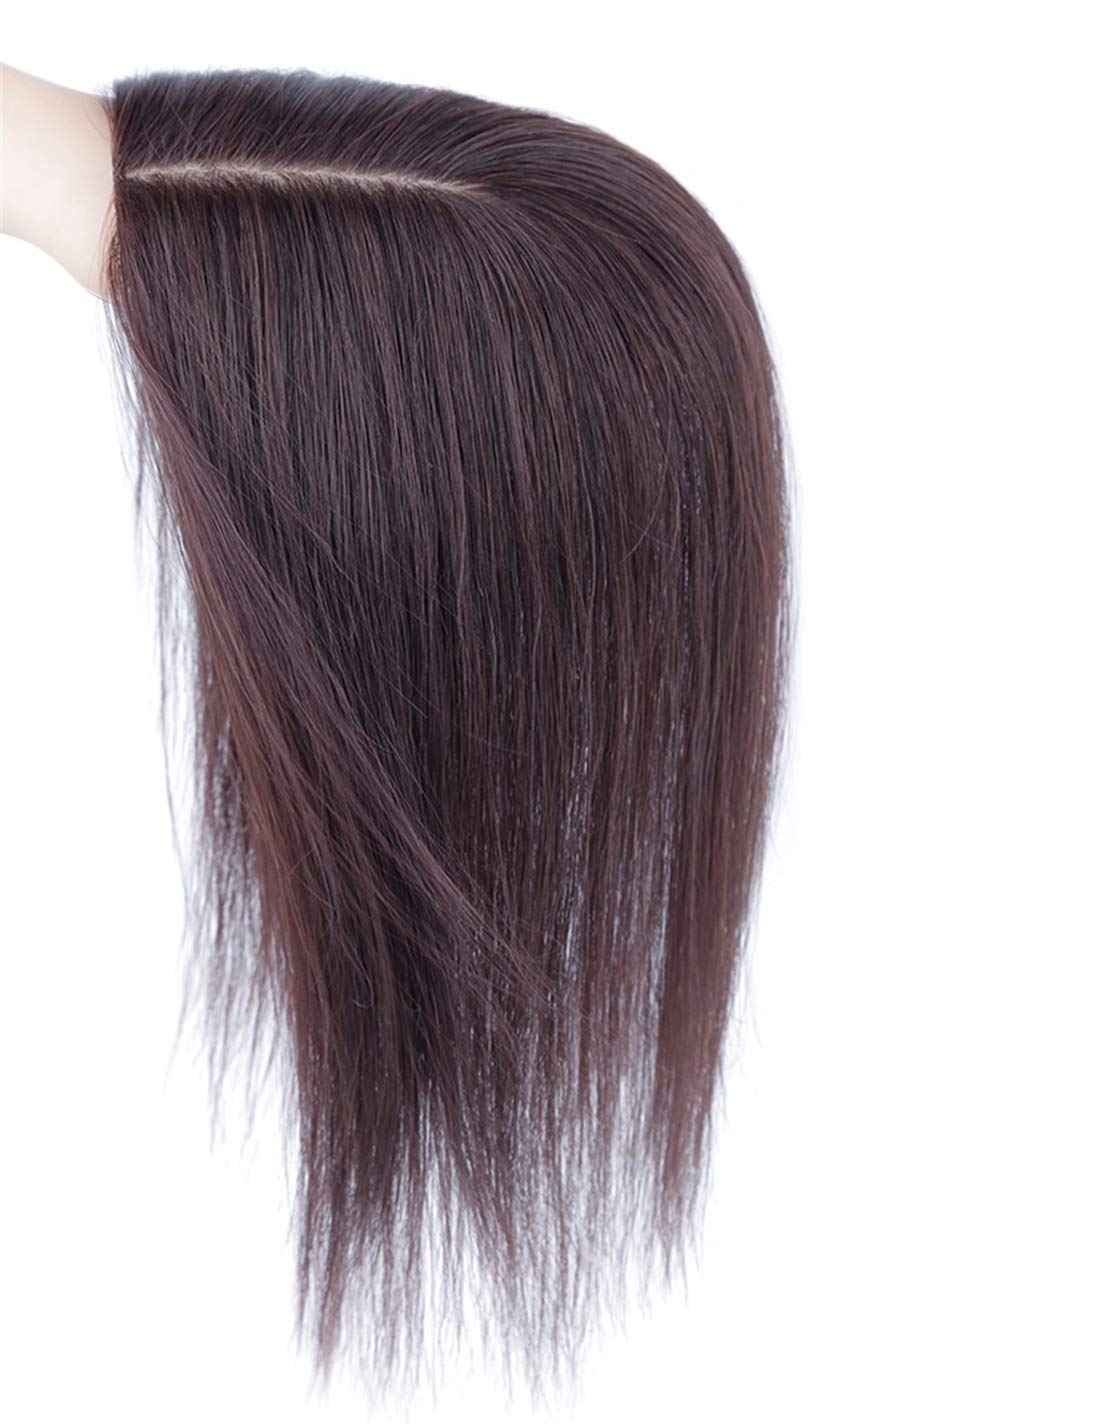 "Natural Silk Base Parting Human Hair Toppers for Women with Grey and Thinning Hair, 5"" x 5.5"" Crown Topper, Left Part 12.6"" 9"